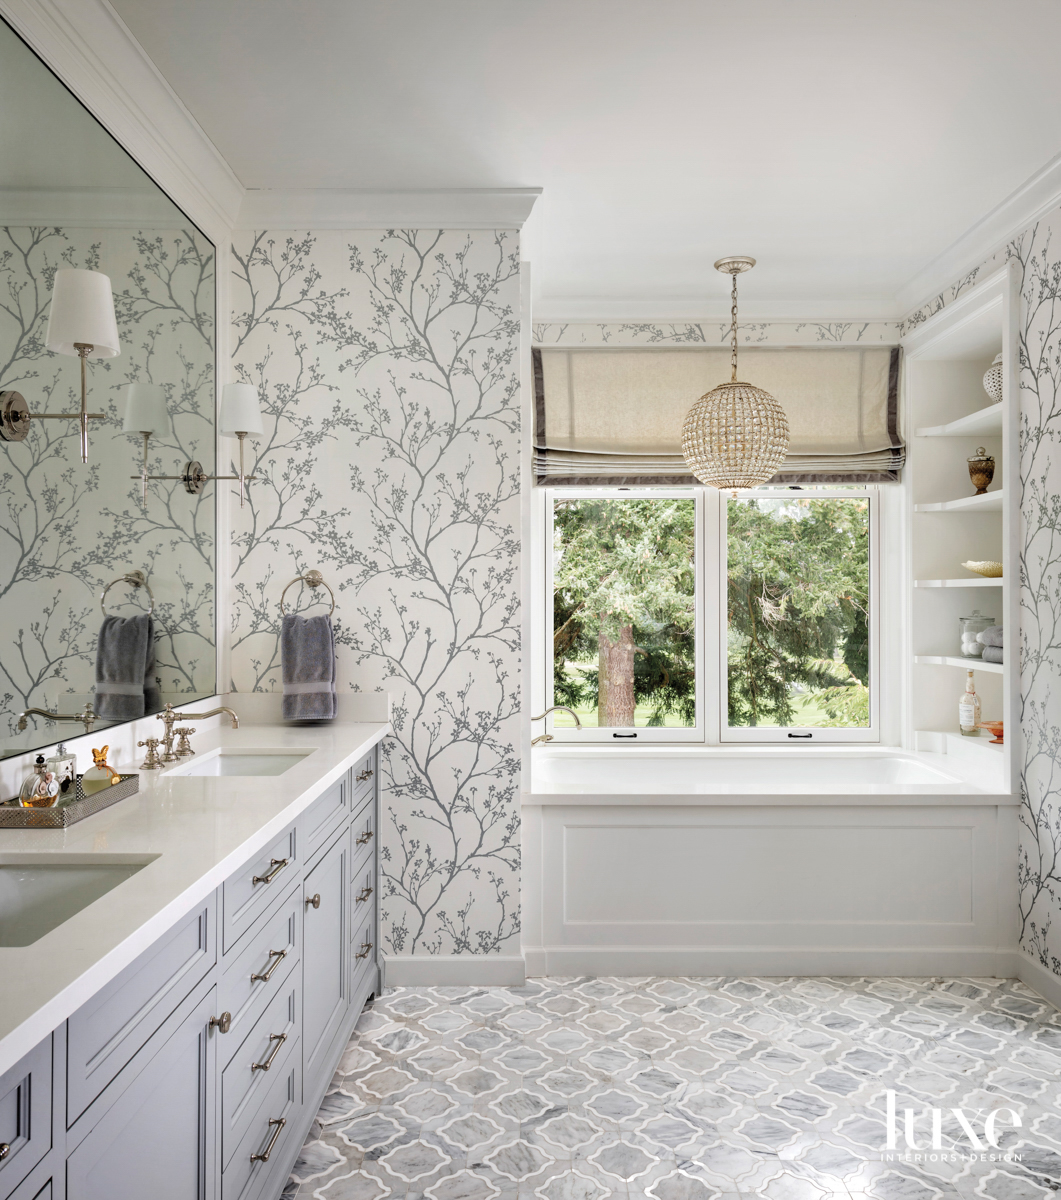 Main bathroom with floral wallpaper...